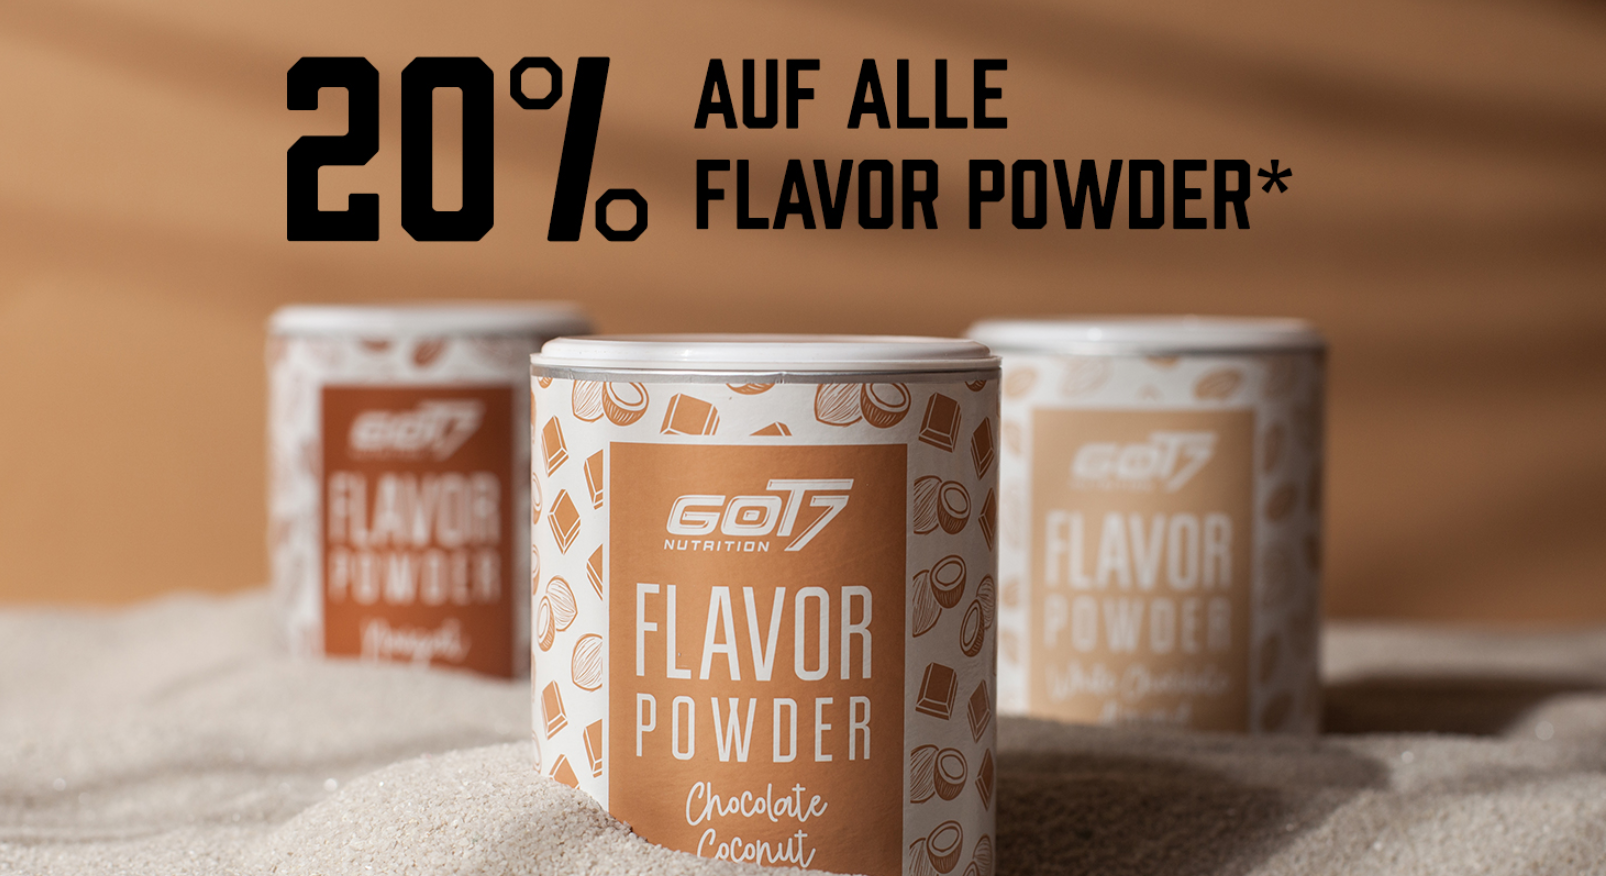 30% auf alle GOT7 Flavor Powder